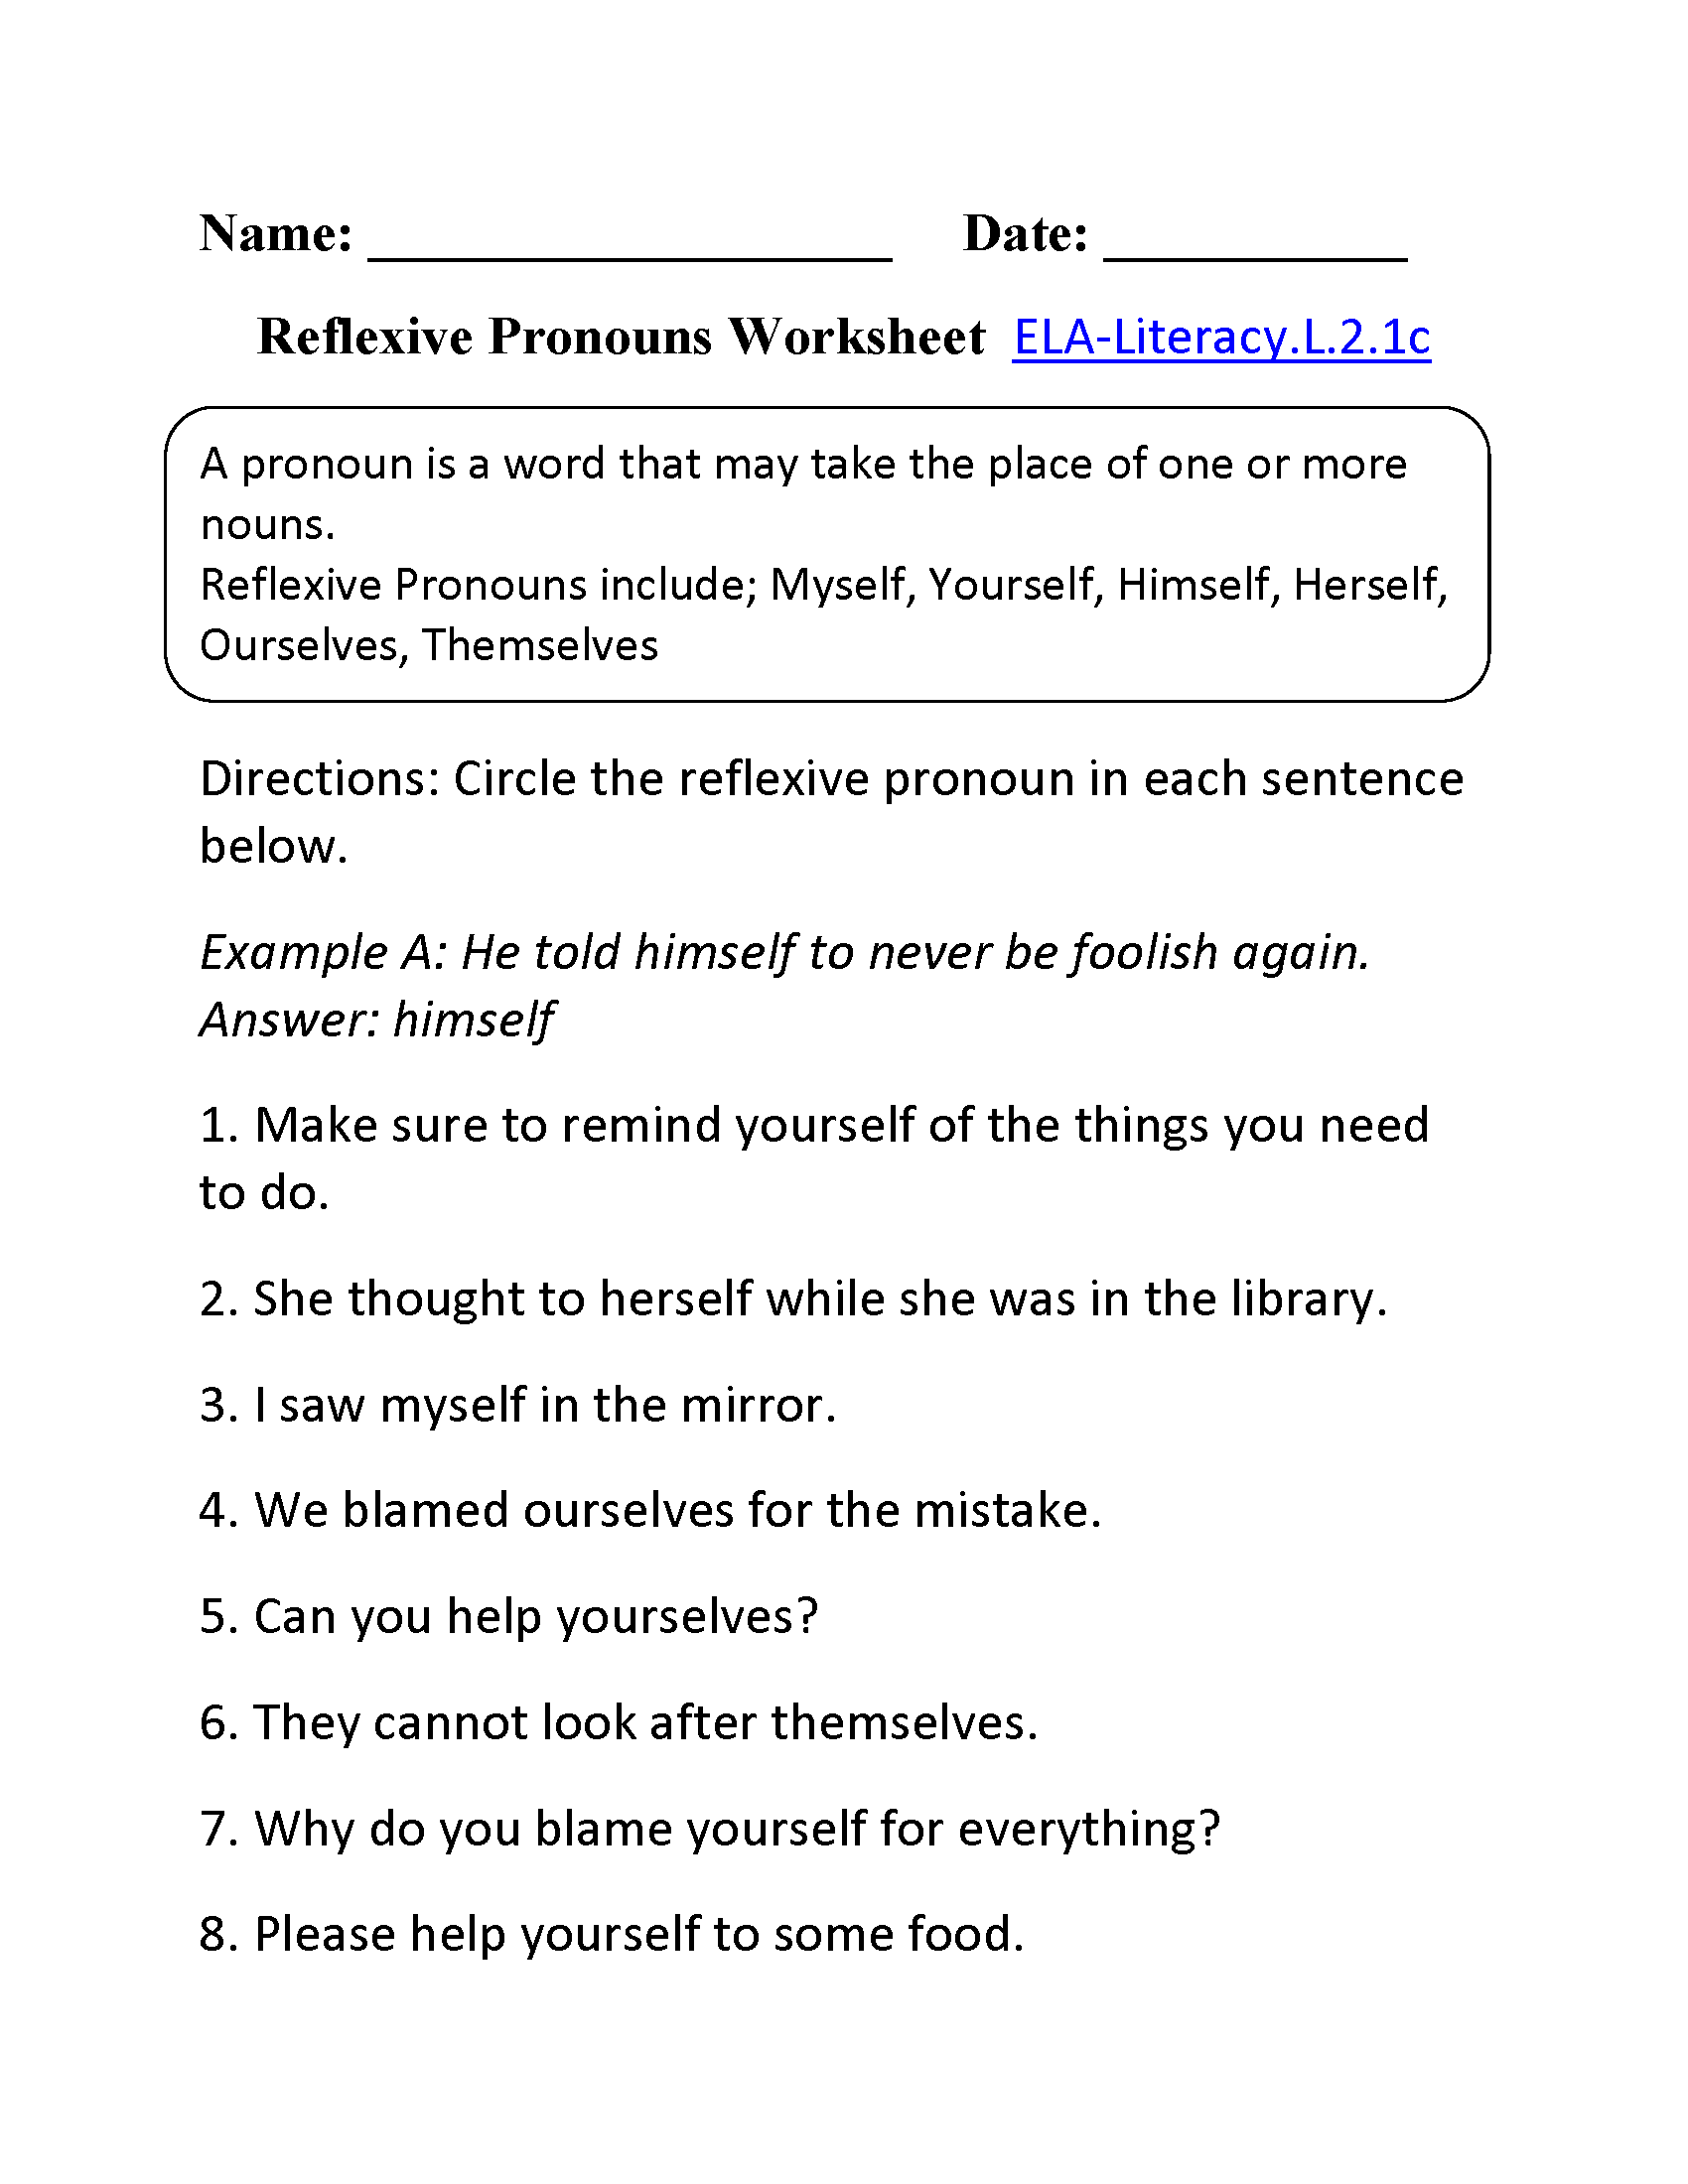 worksheet Reflexive Pronoun Worksheets reflexive pronouns worksheet 1 ela literacy l 2 1c language worksheet